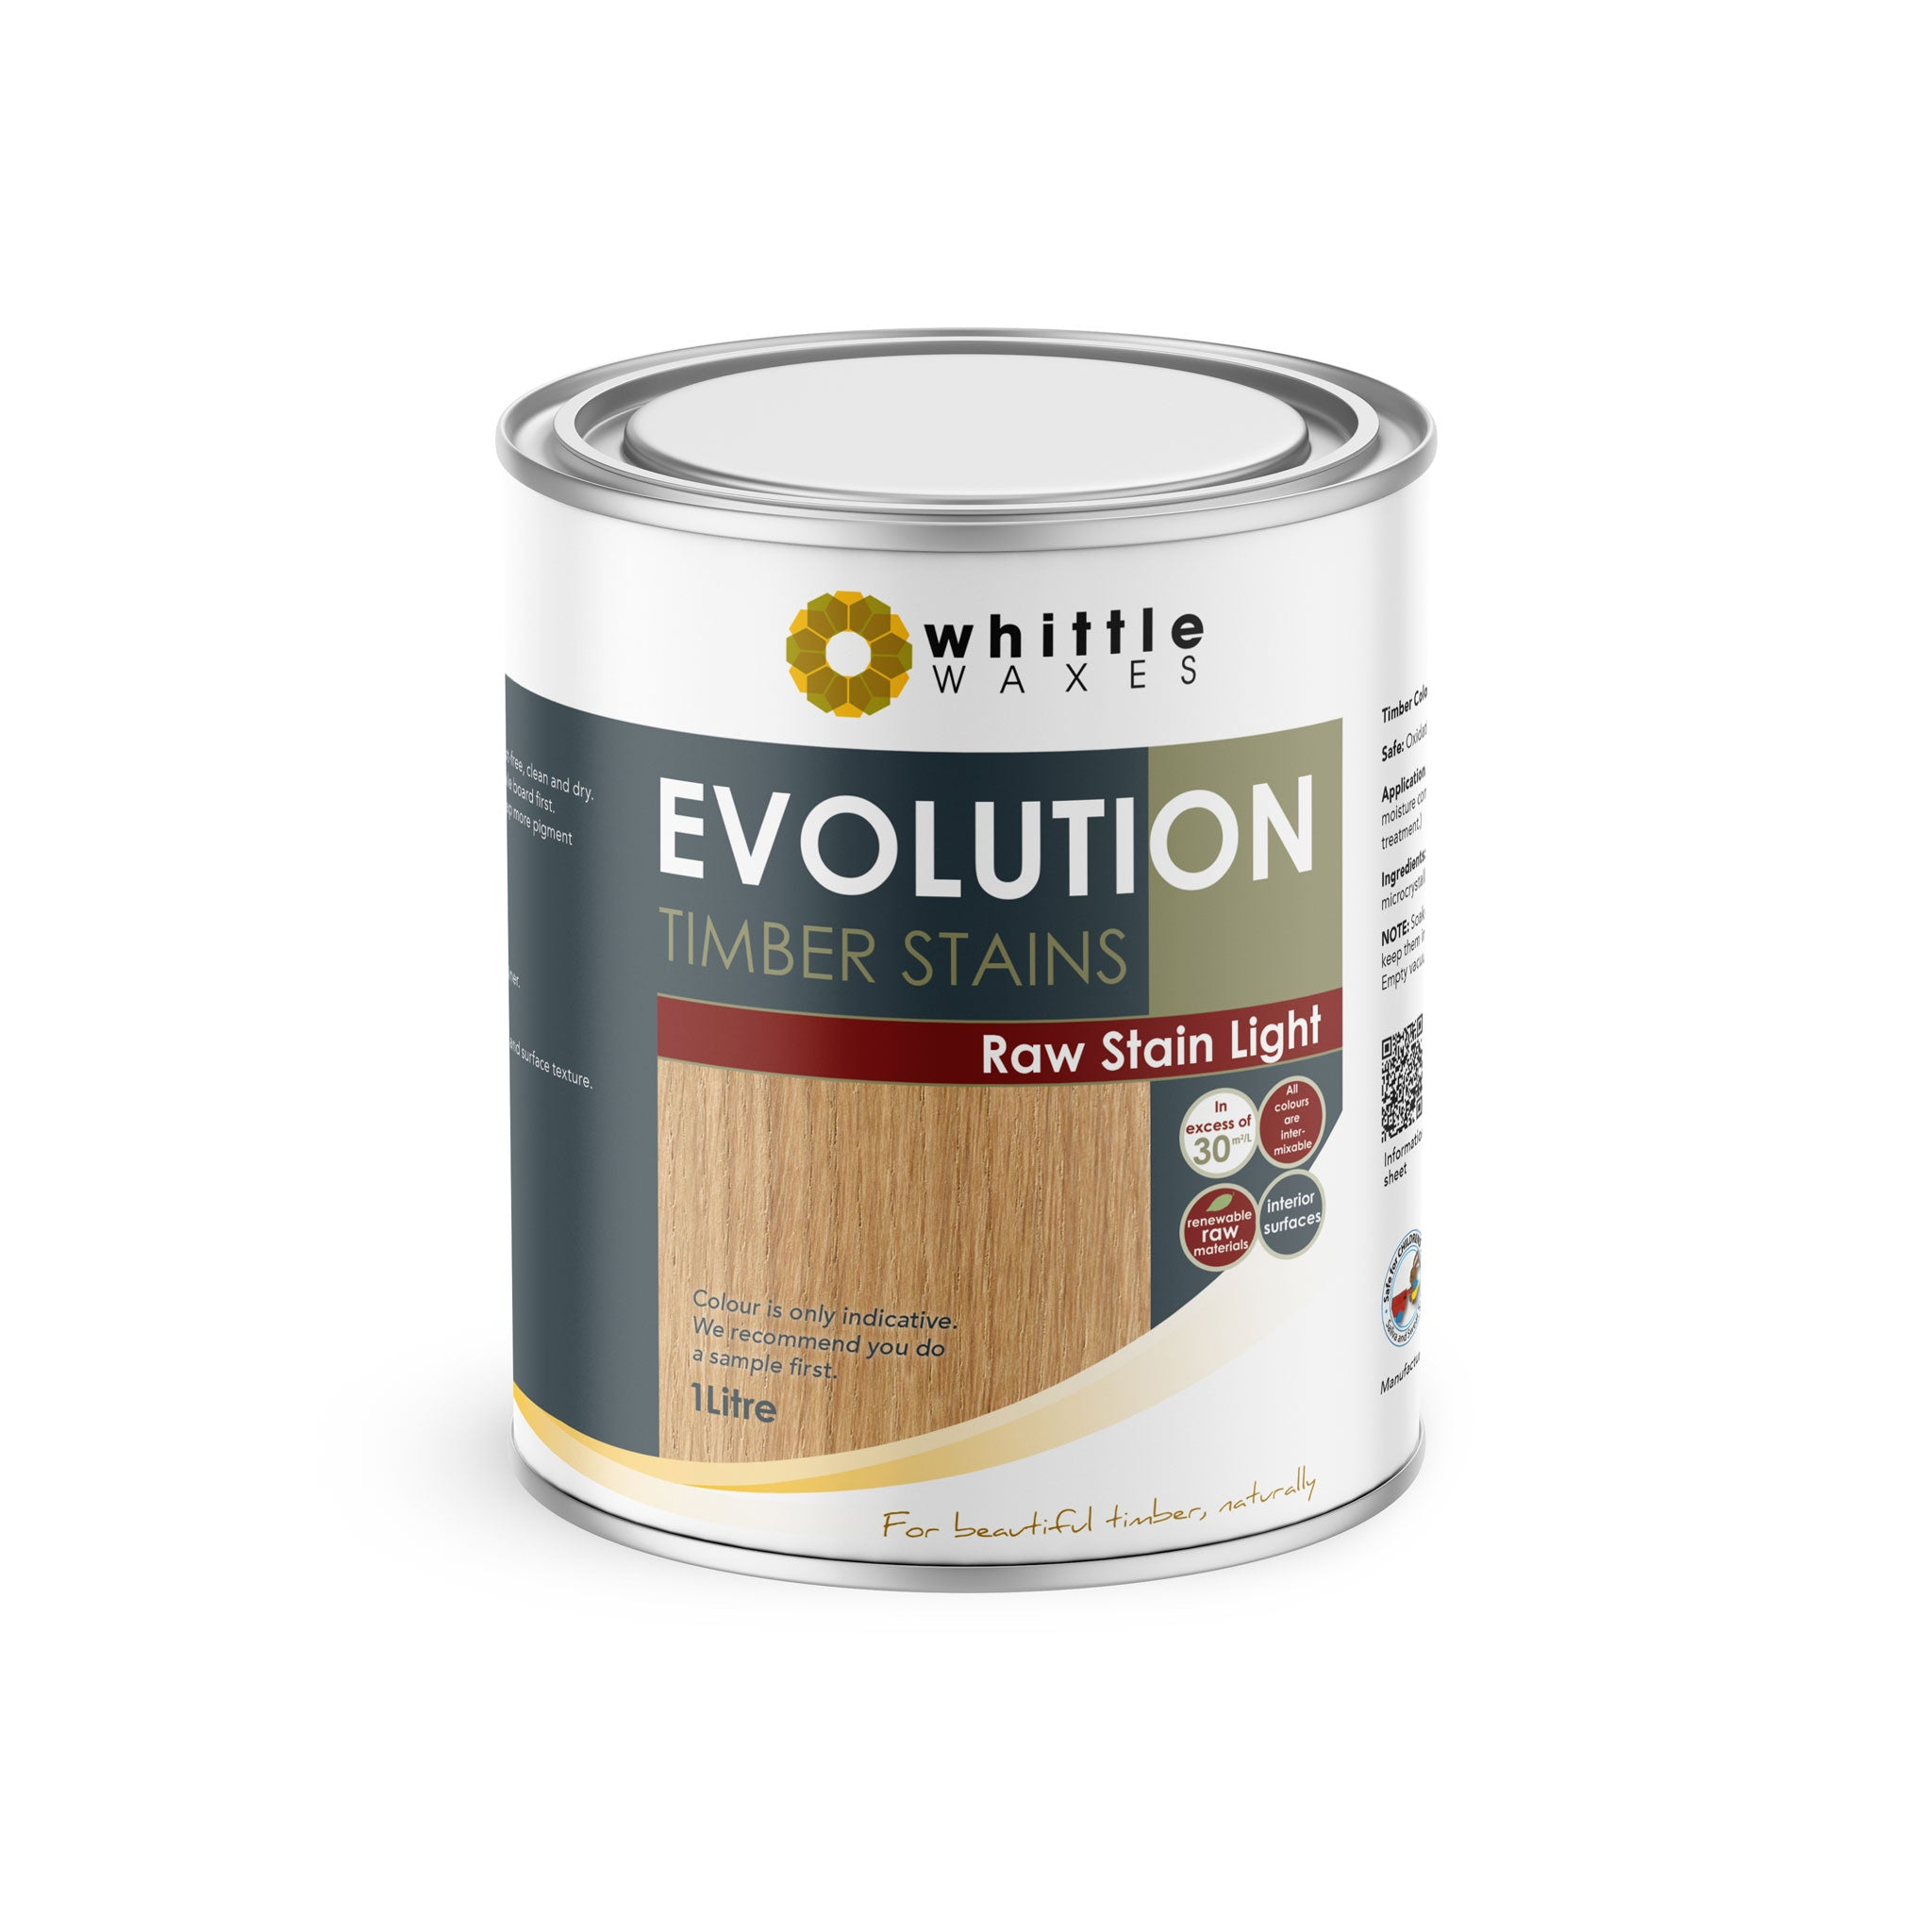 Whittle Waxes Evolution Raw Stain Light - quality timber stain - 1 Litre